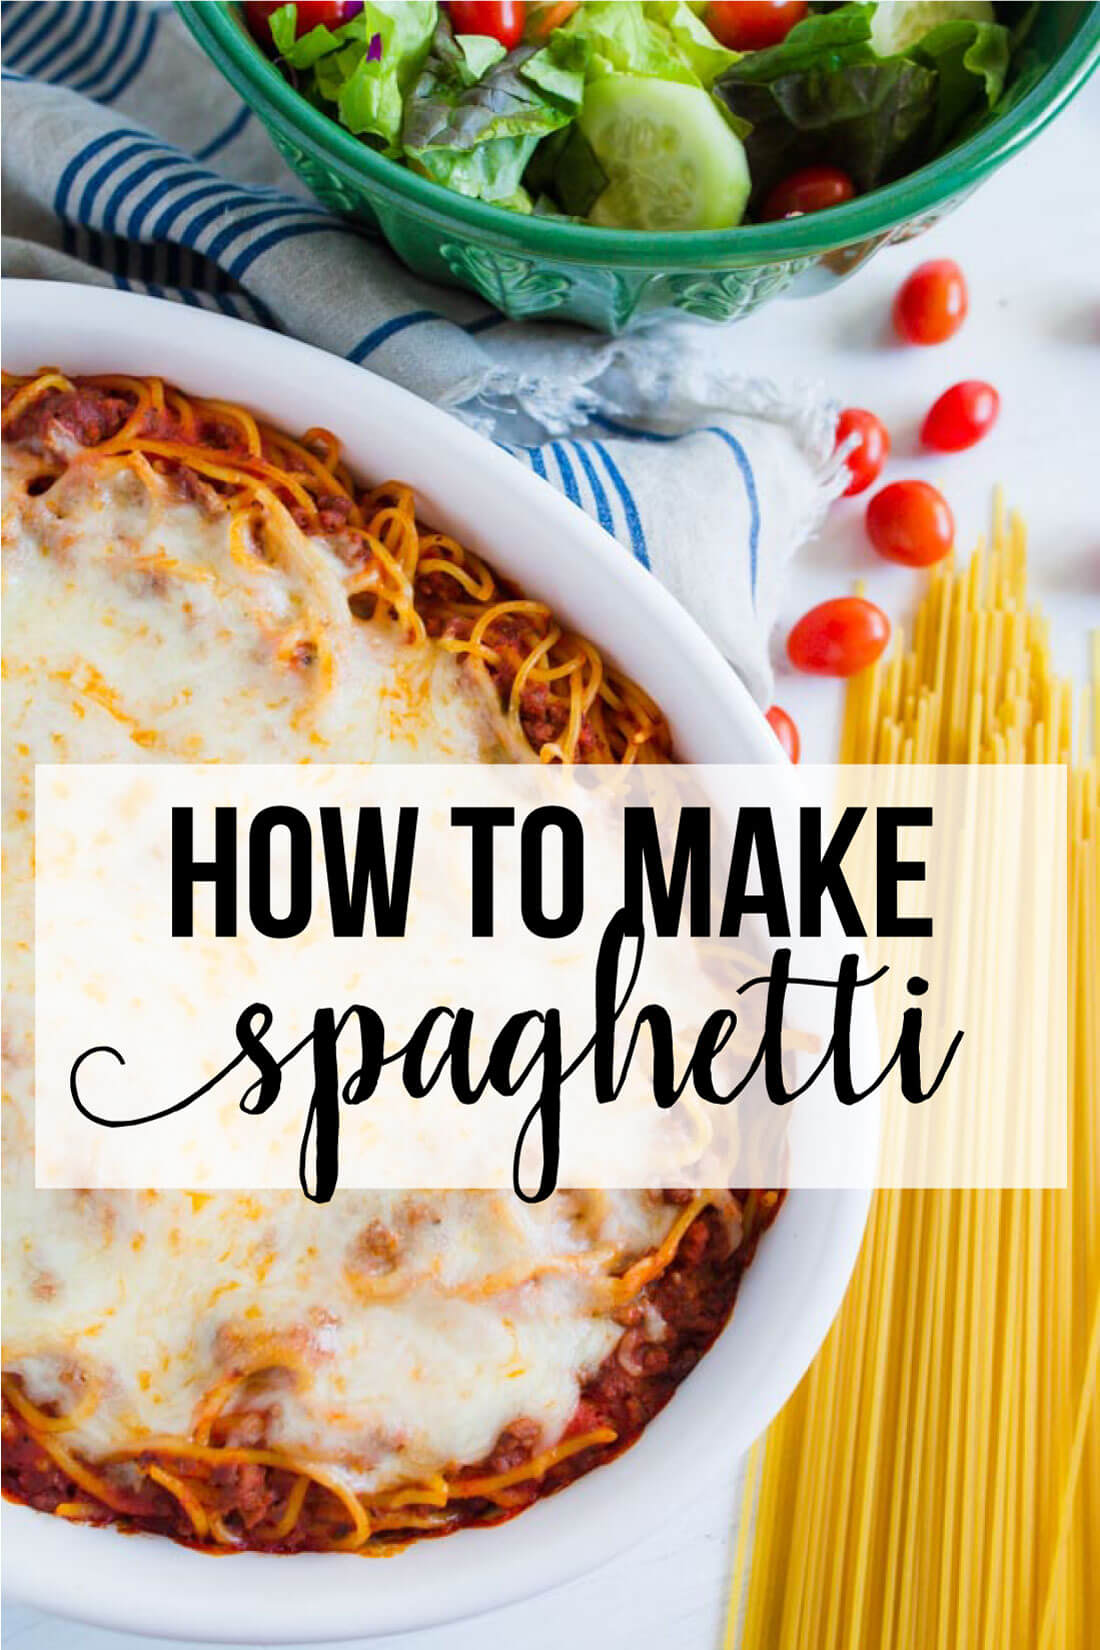 How to Make Spaghetti - tips and recipes to make the very best.